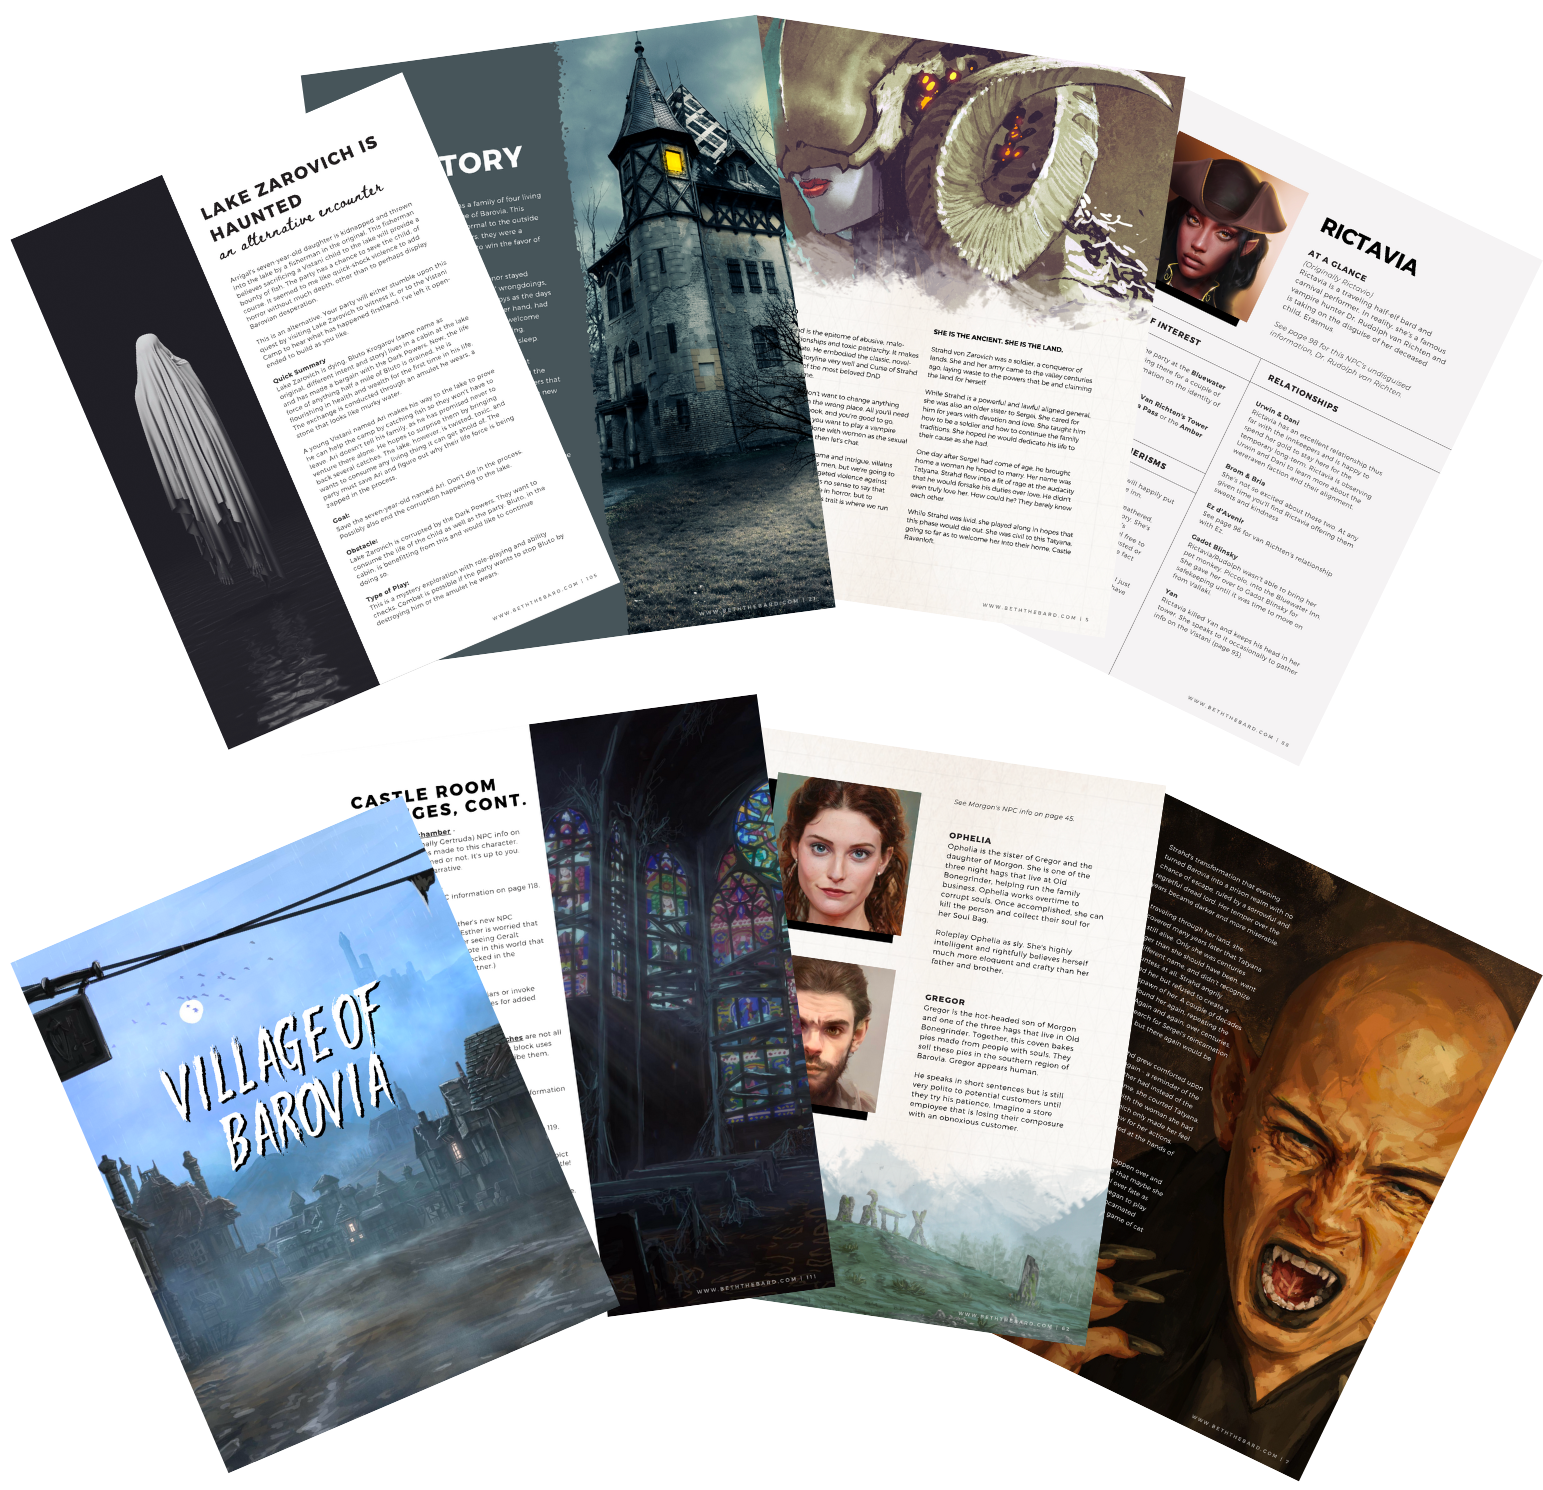 Page previews for She is the Ancient including faction information, NPC map, NPC description pages, handouts, encounter changes, and location changes.